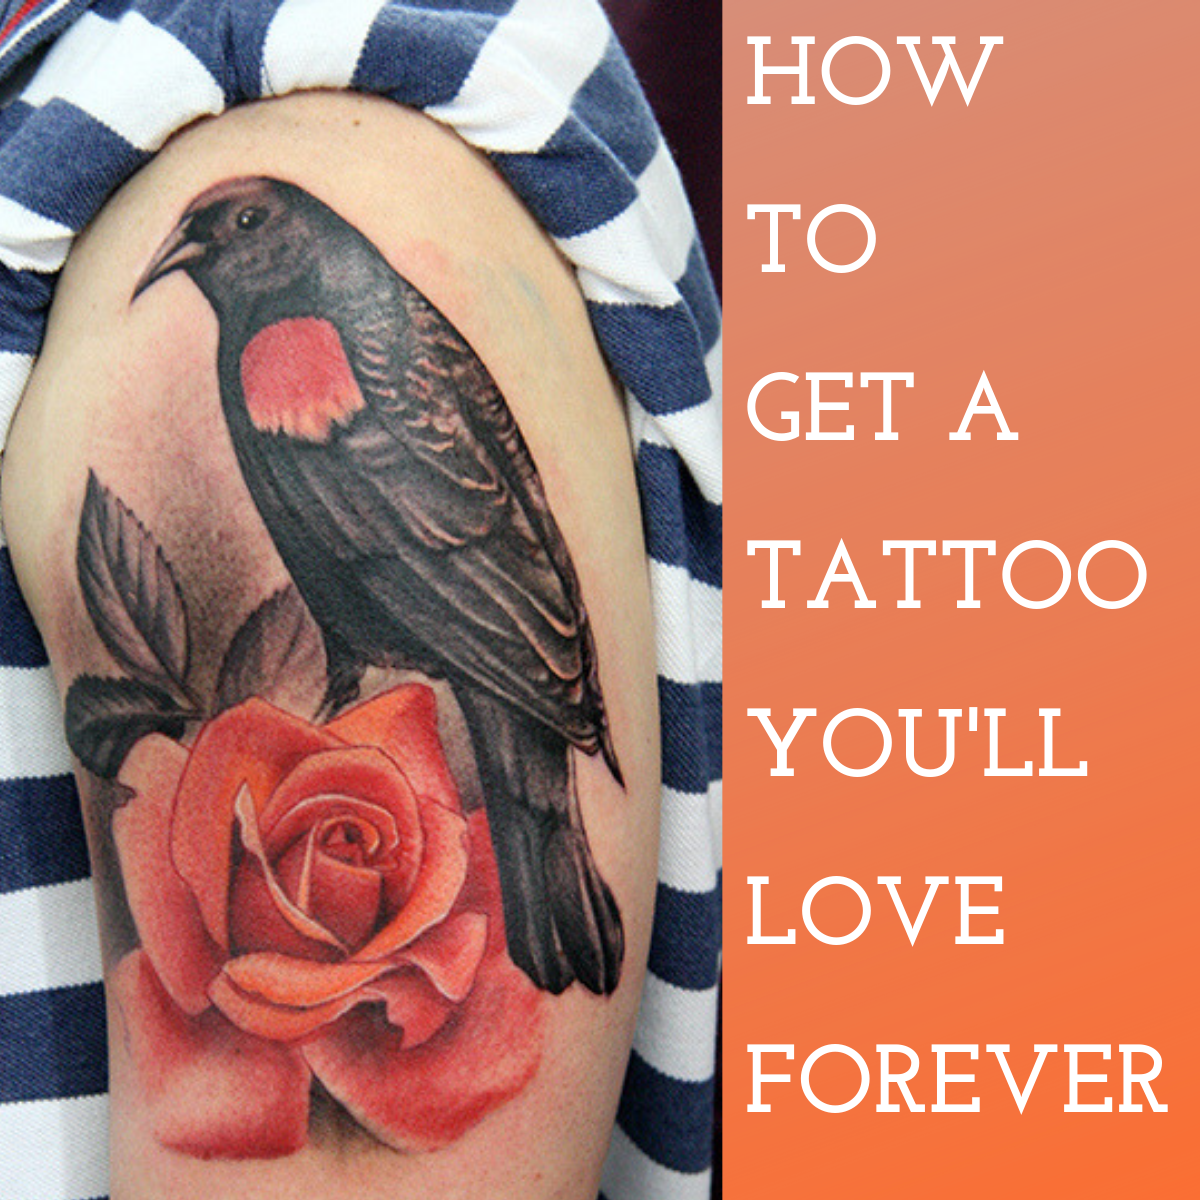 5787738b9b706 A Tattoo Artist's Tips for Getting a Tattoo You'll Love Forever ...